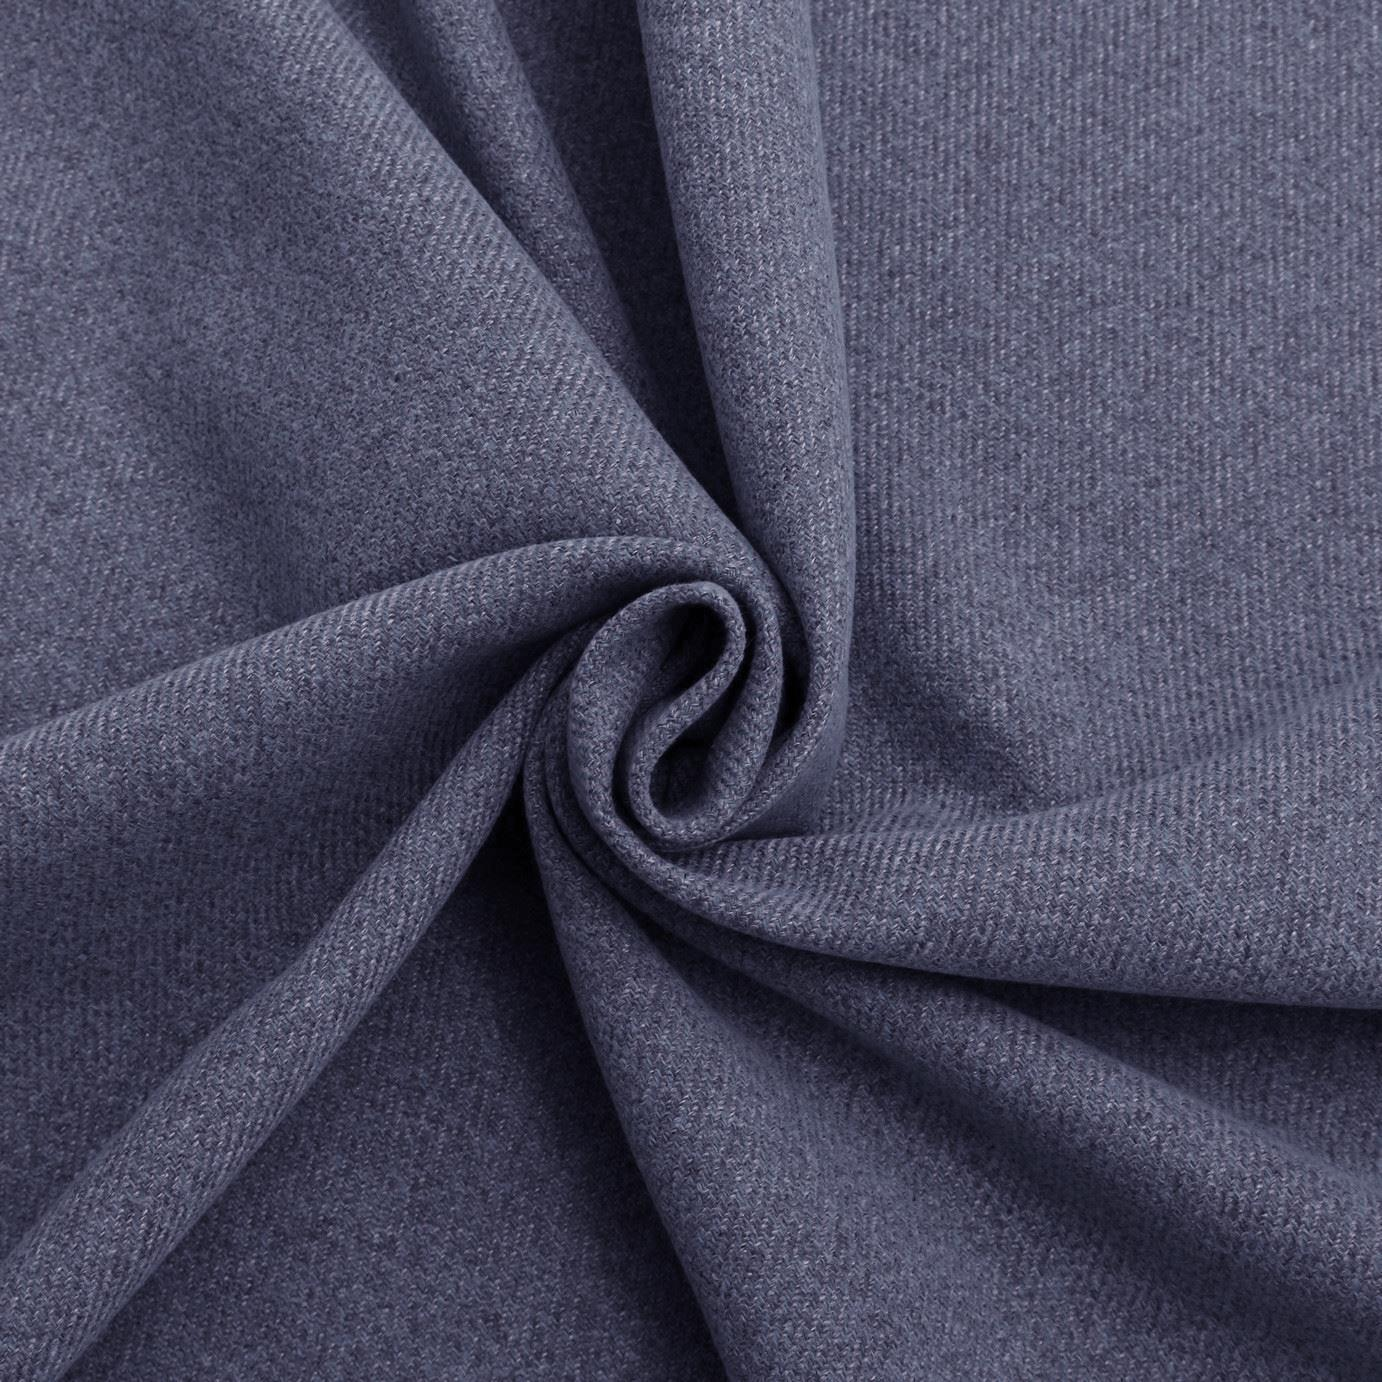 thumbnail 6 - TRADITIONAL TWILL WEAVE SOFT PLAIN FURNISHING COTTON FAUX WOOL UPHOLSTERY FABRIC